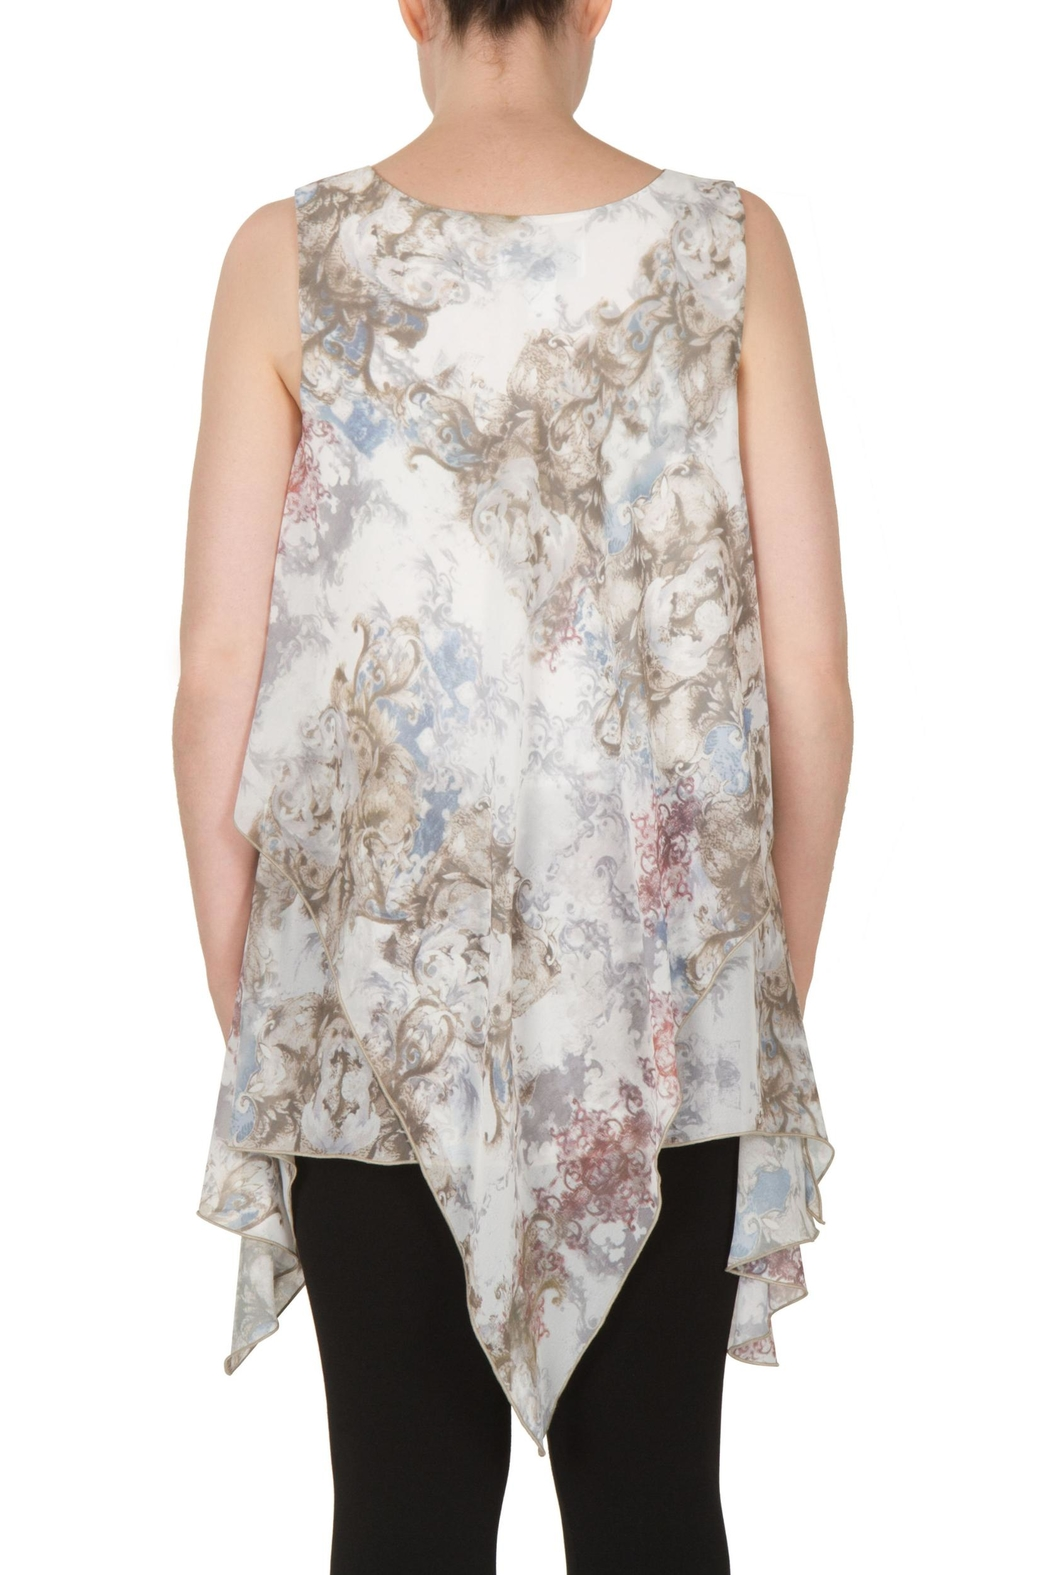 Joseph Ribkoff Baroque Georgette Tunic Top - Side Cropped Image